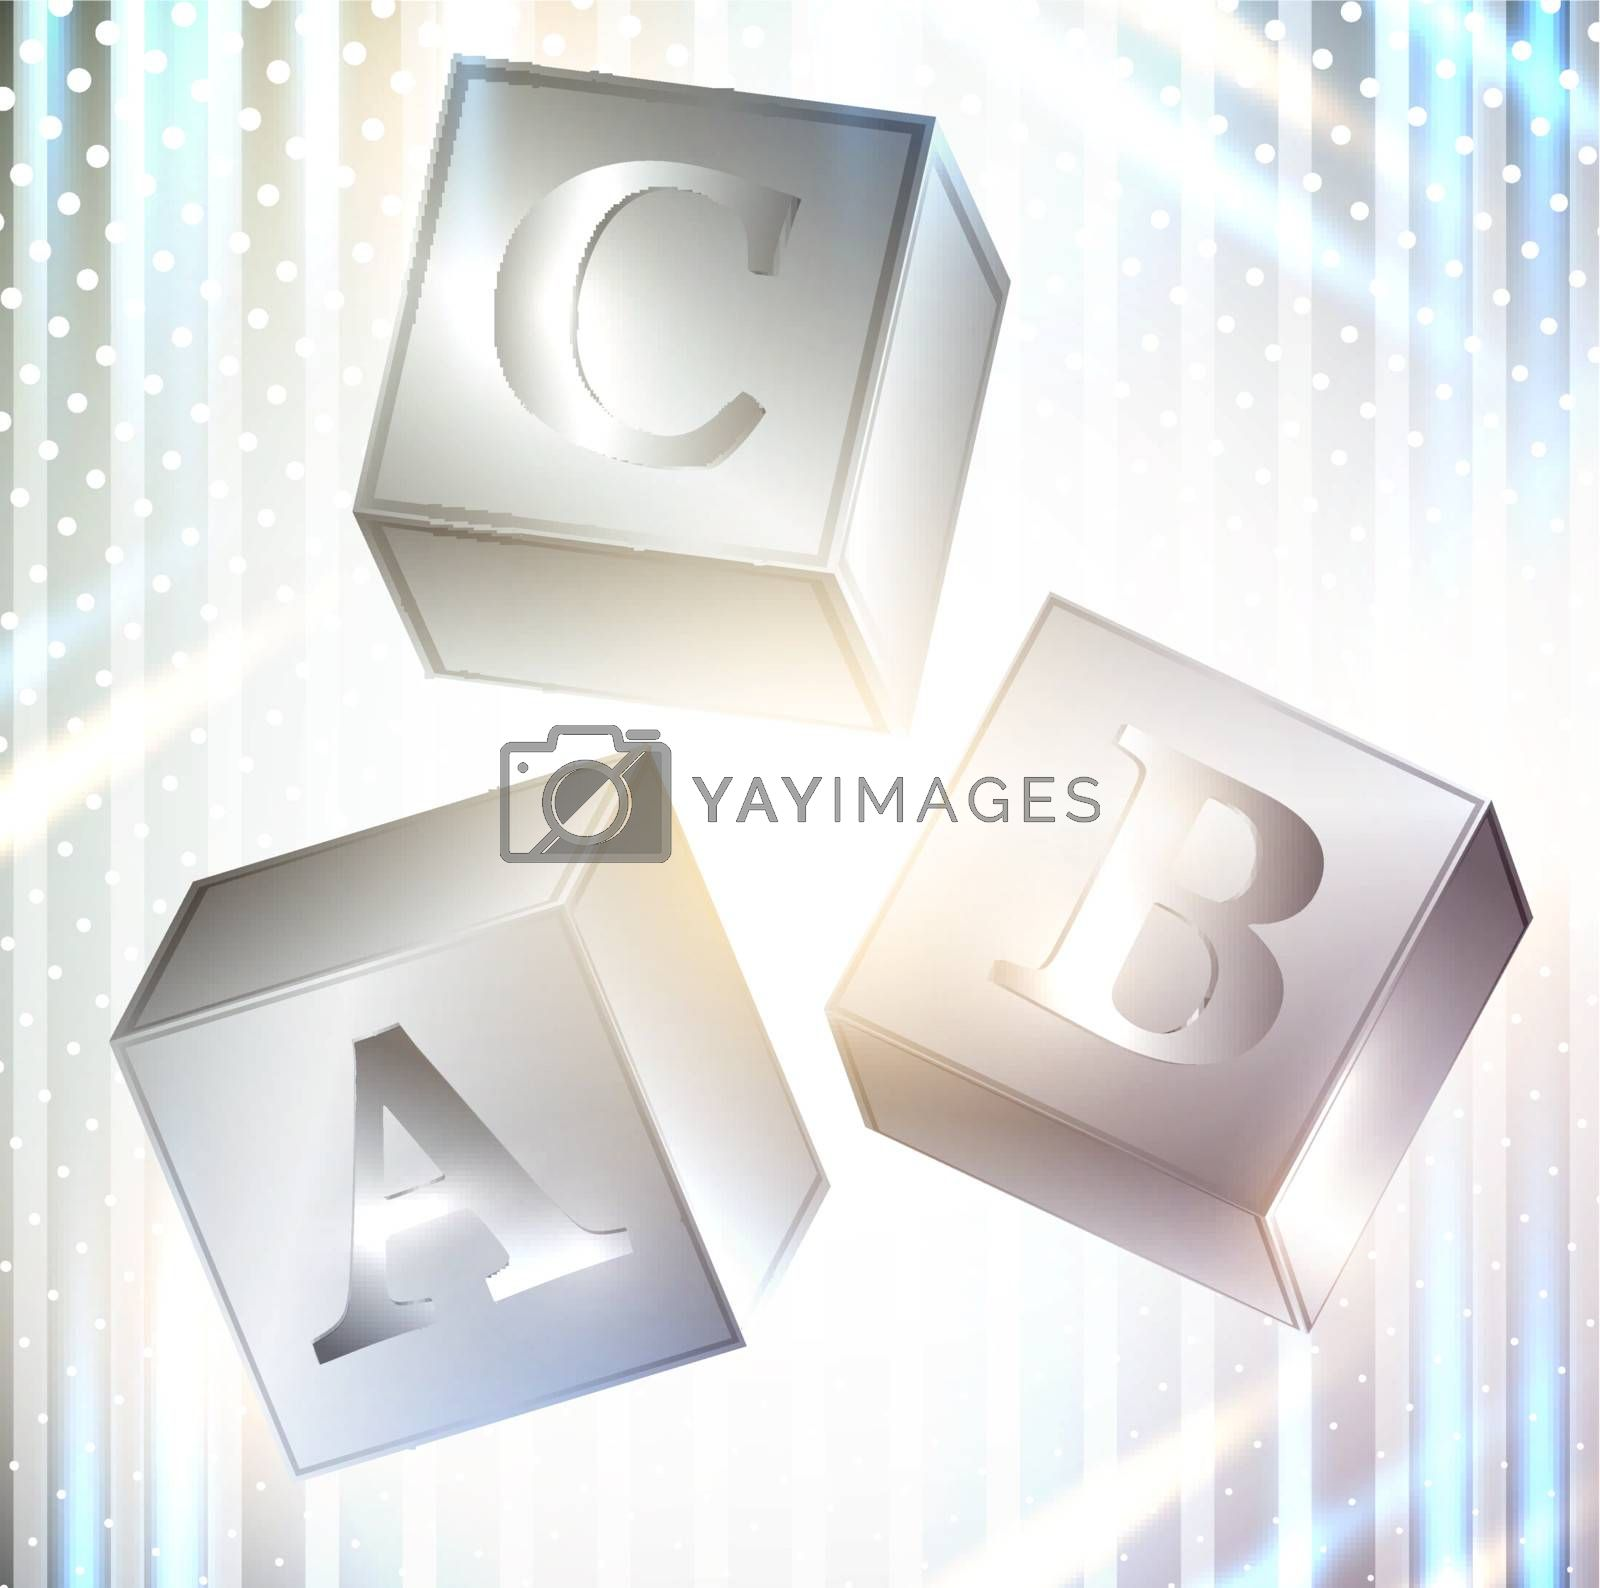 abc cubes over abstract bright background